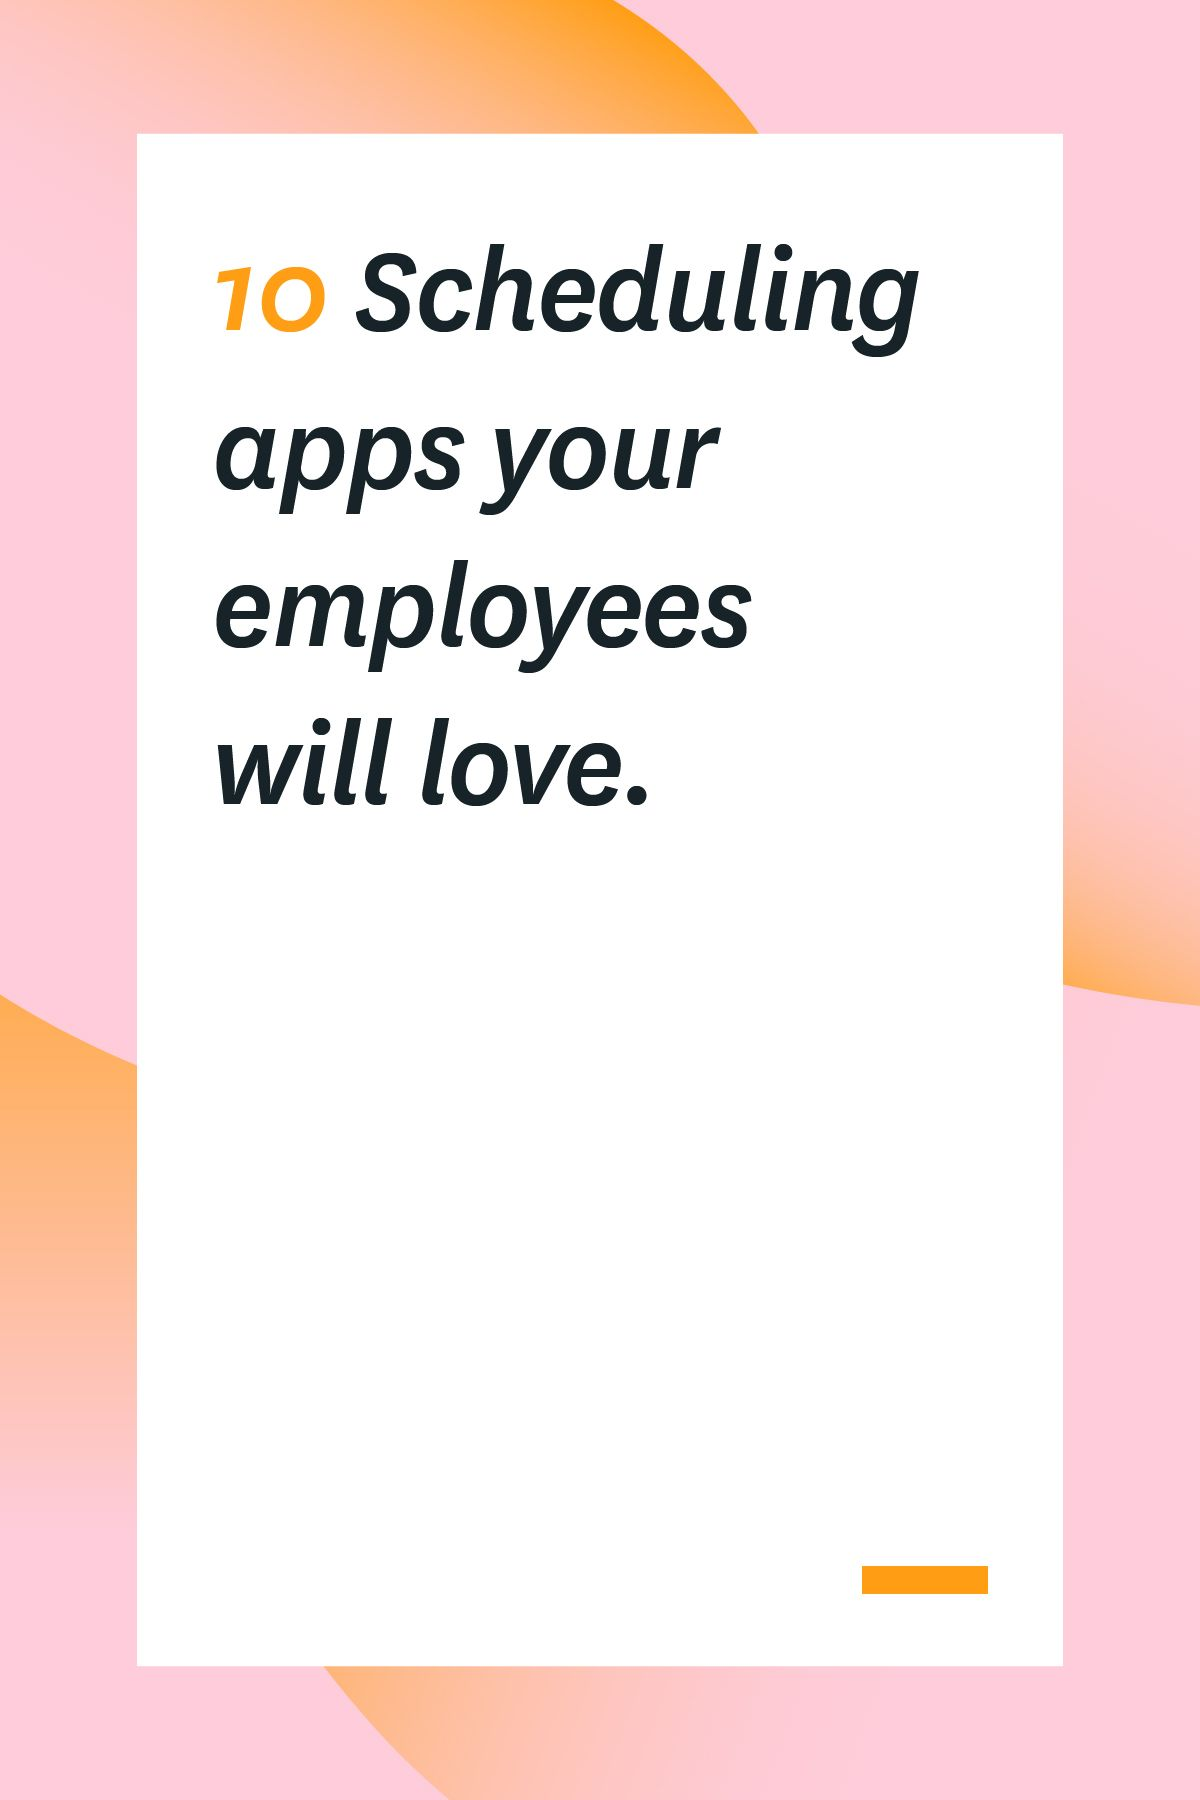 See what makes our employee scheduling software oneofa